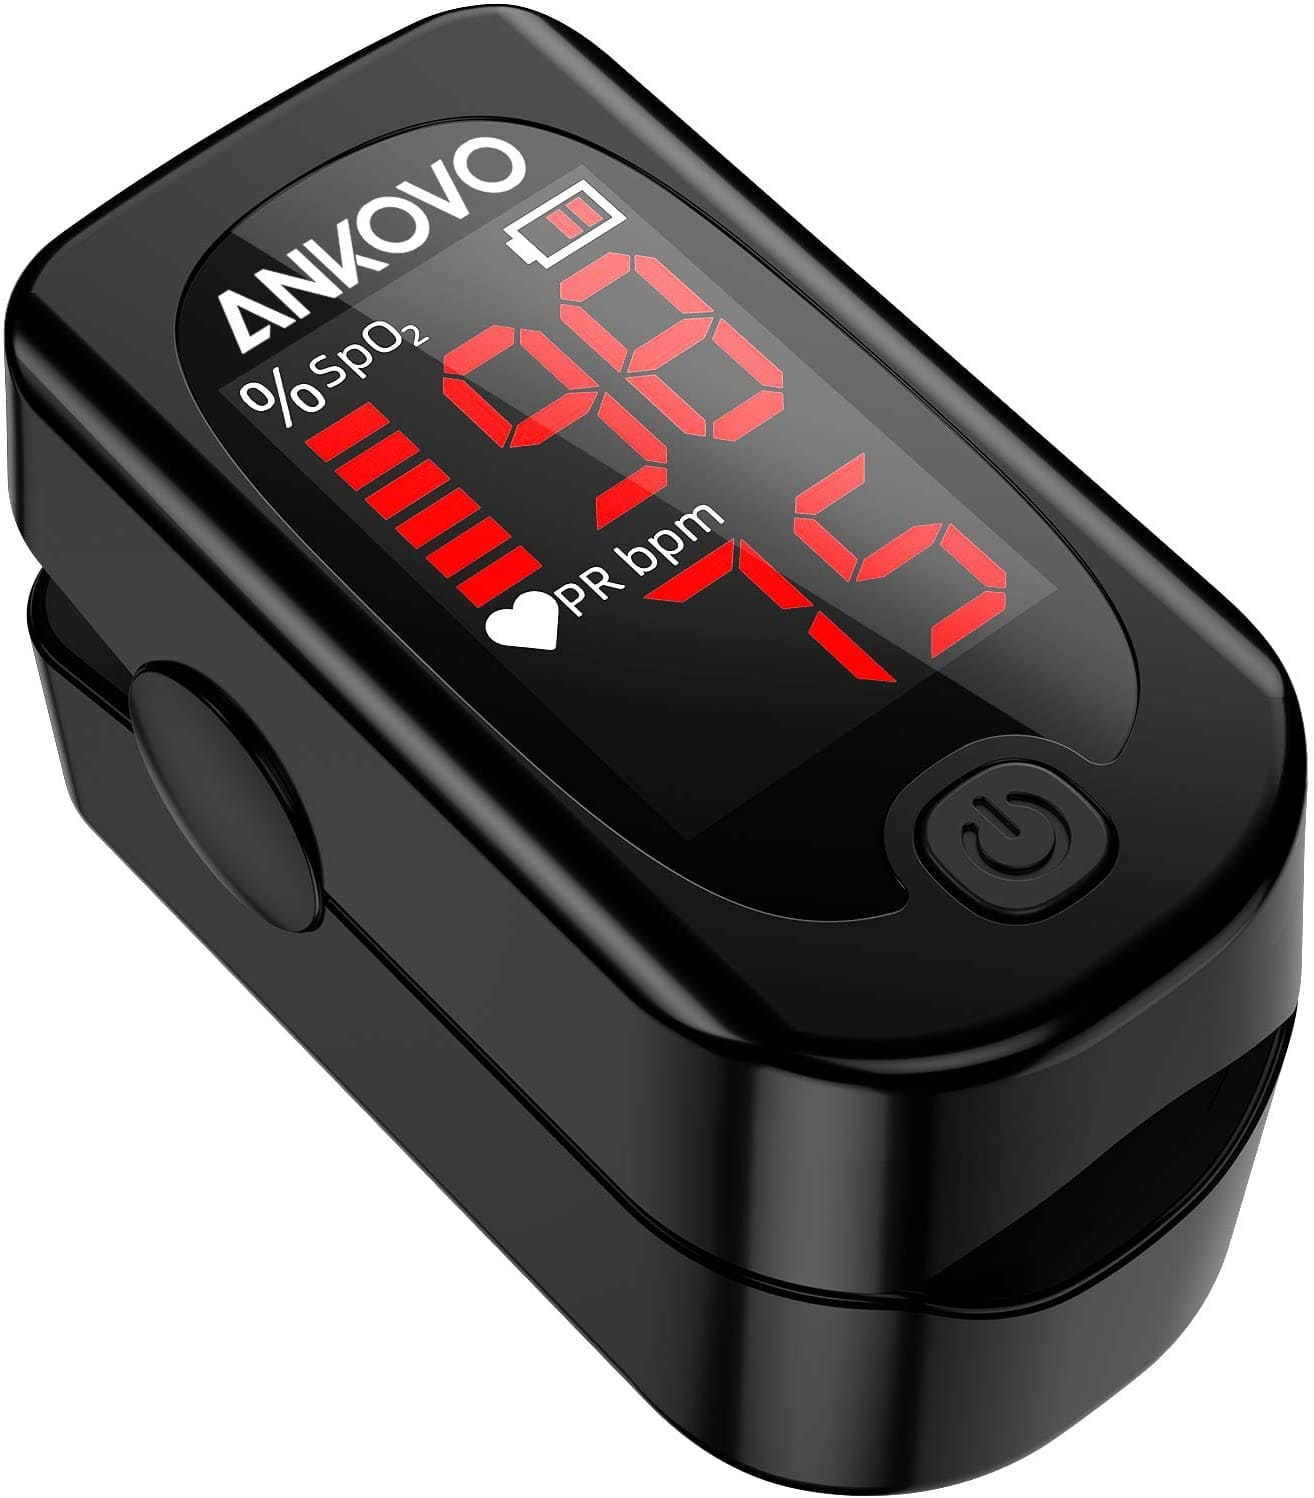 ANKOVO Portable Pulse Oximeter Fingertip Blood Oxygen Saturation Monitor with Pulse Rate, Heart Rate Monitor  - $35.99 + f/s